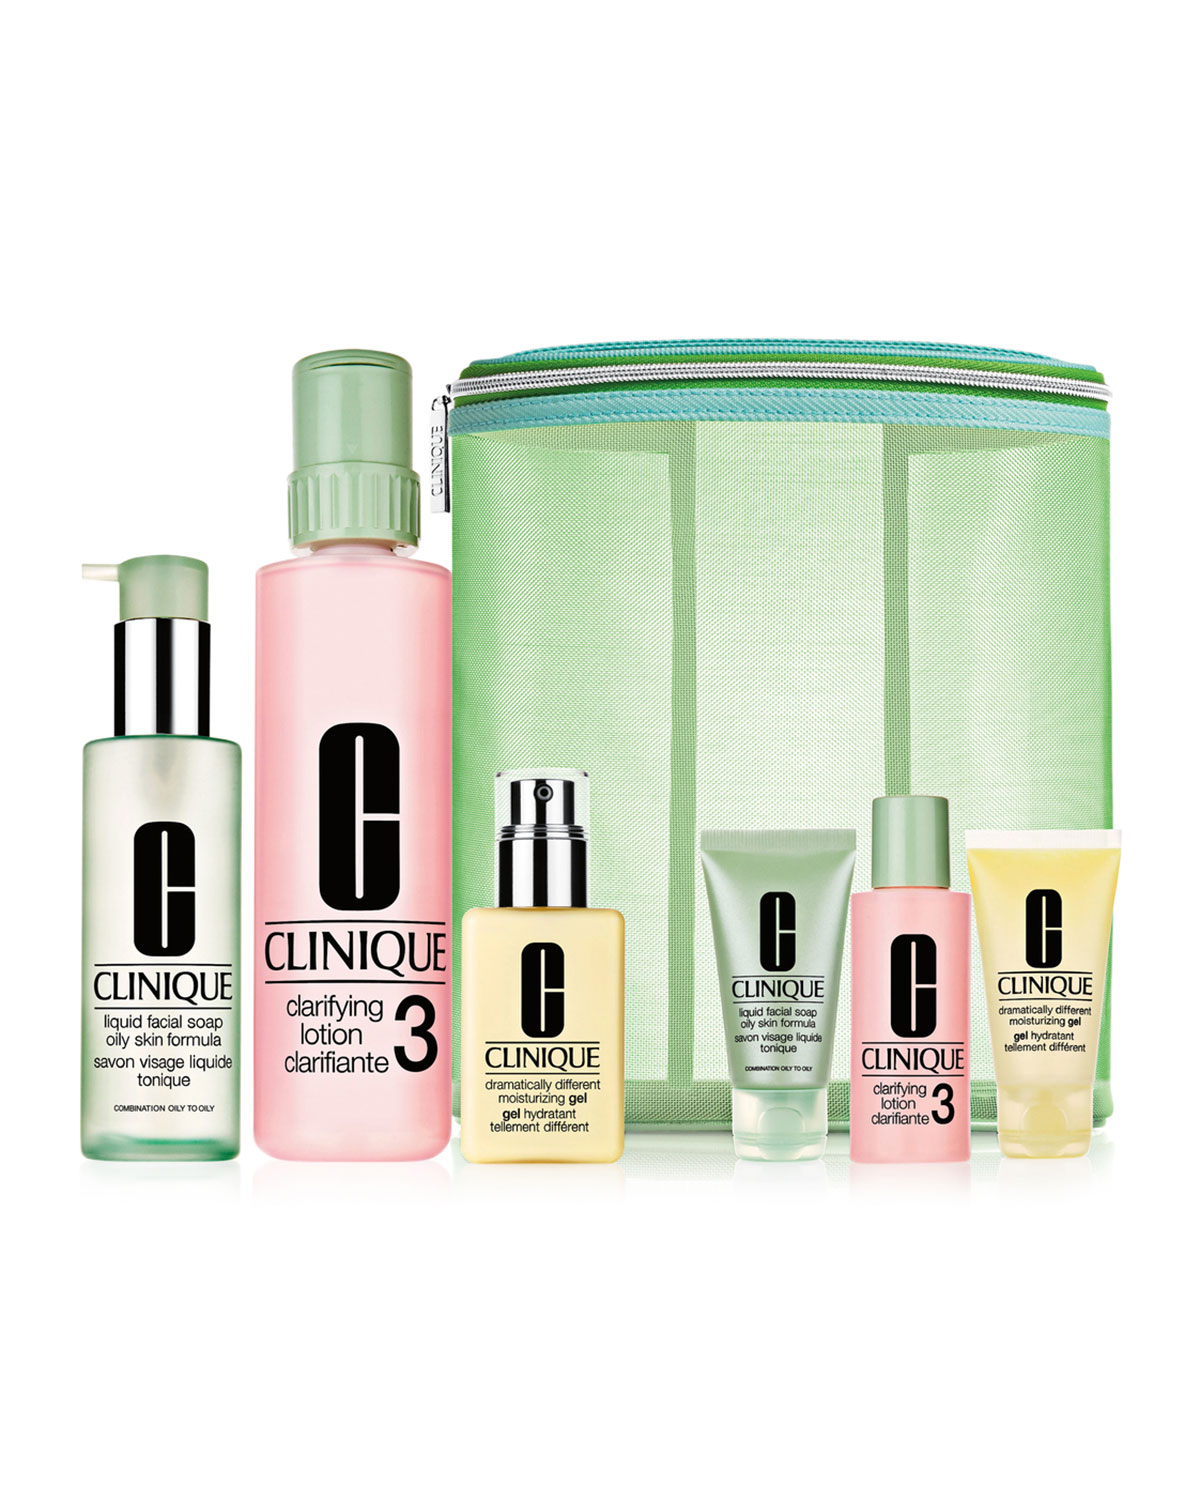 Limited Edition Great Skin Everywhere Set For Oilier Skins ($90 Value)